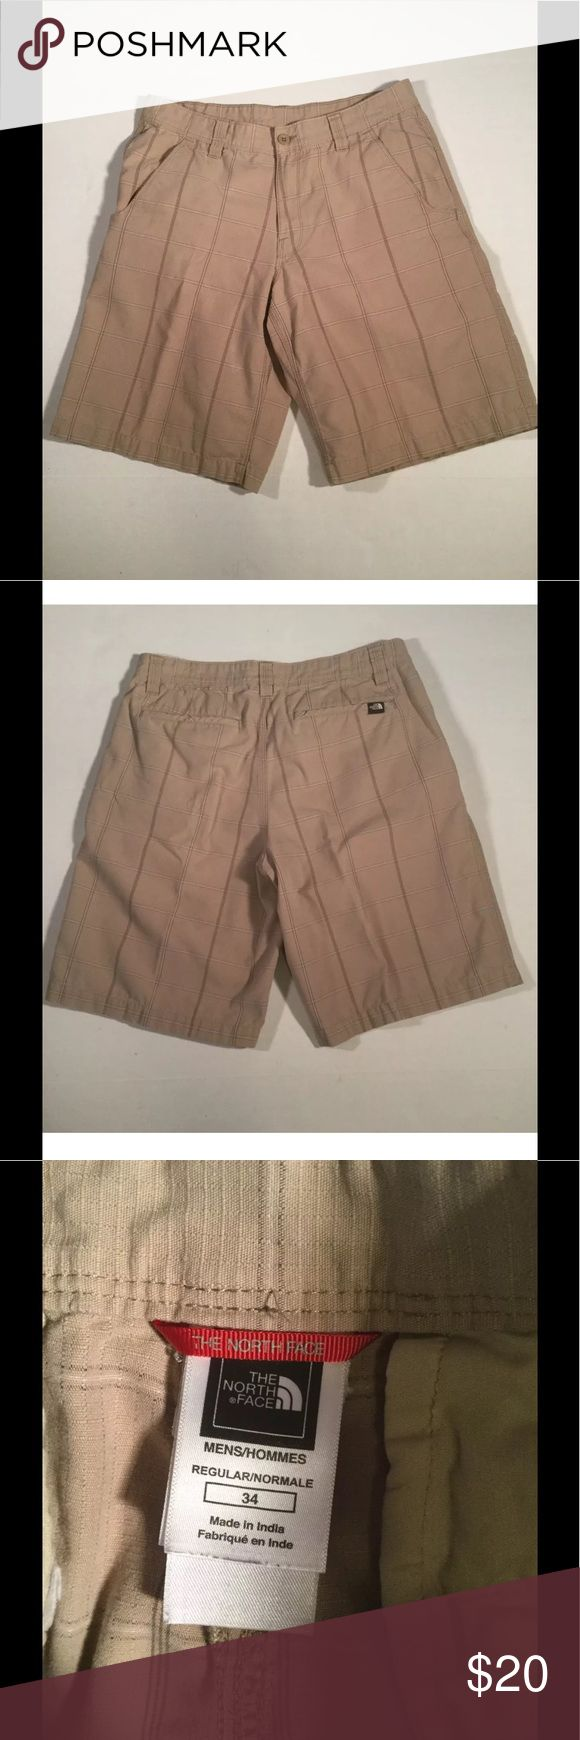 """The North Face Men's Dress Shorts Size 34 Nice men's shorts with normal wear and no observed flaws or defects. Has belt loops, two front pockets and two hip pockets. Beige with a window pane design. Tag size 34.   waist: 16.5""""  inseam: 11""""  leg opening: 13""""  total length: 22 1/4"""" The North Face Shorts Flat Front"""